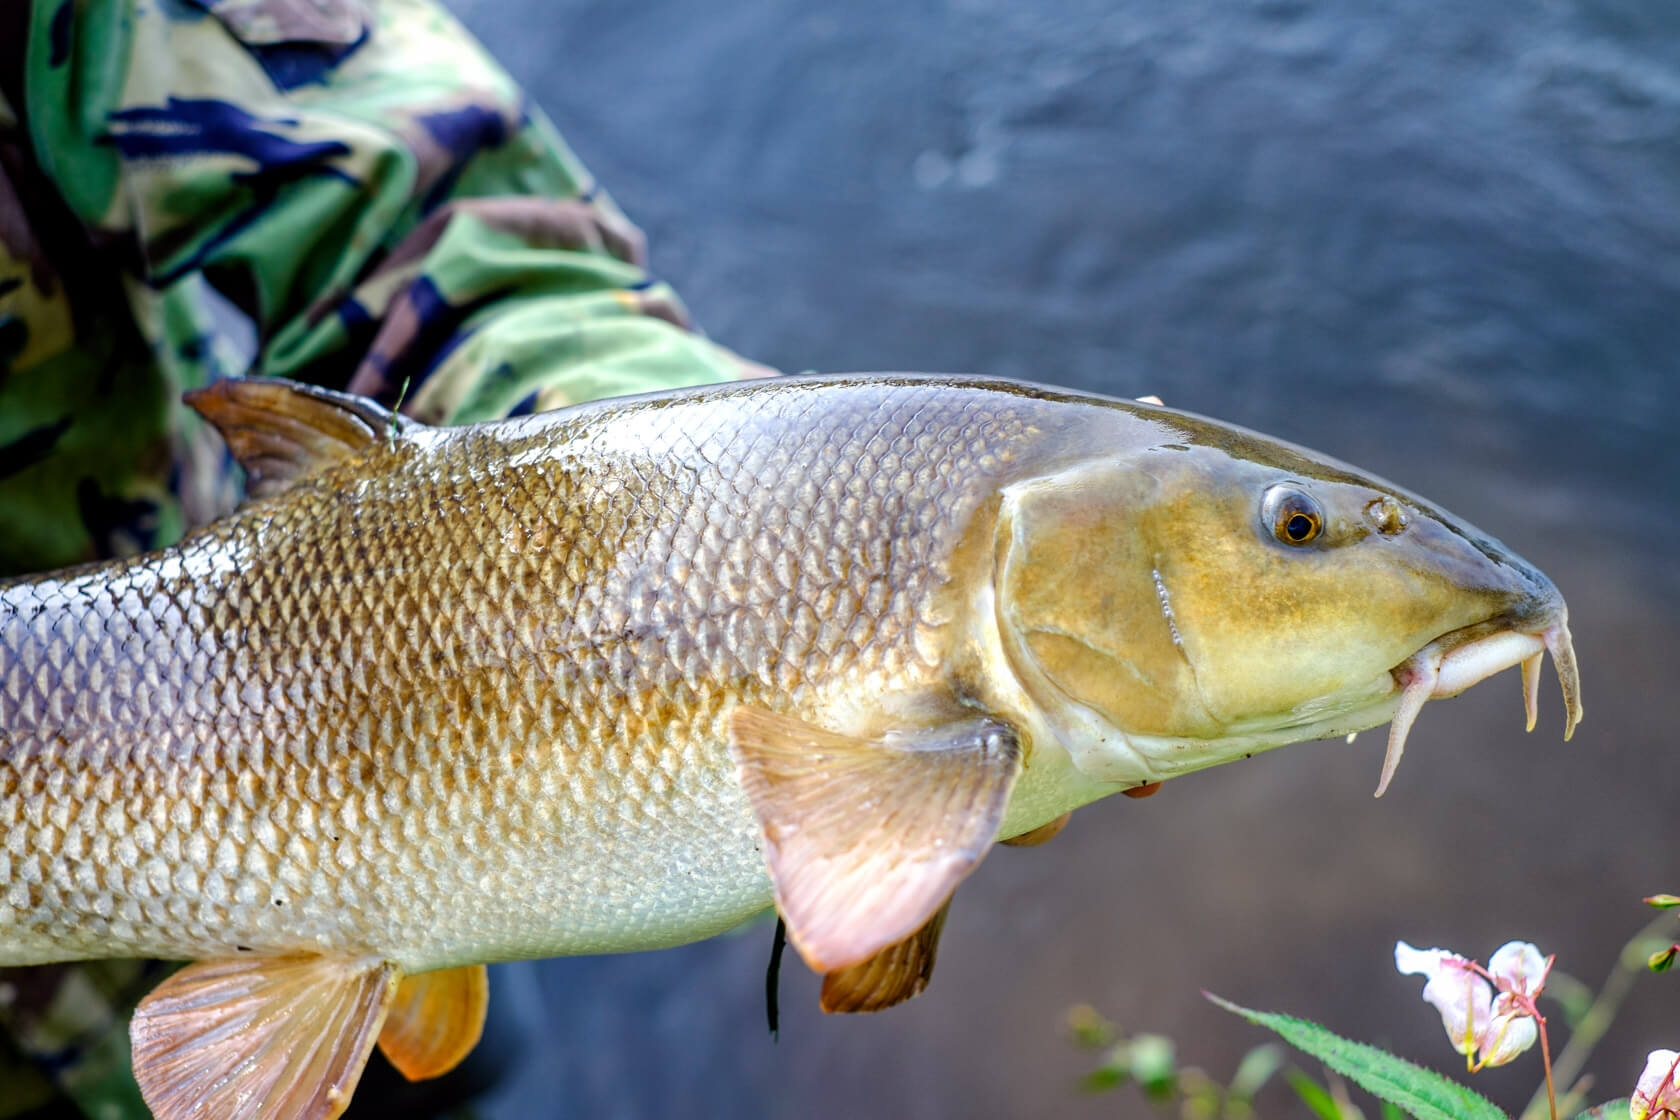 A large Barbel caught from the river Avon.